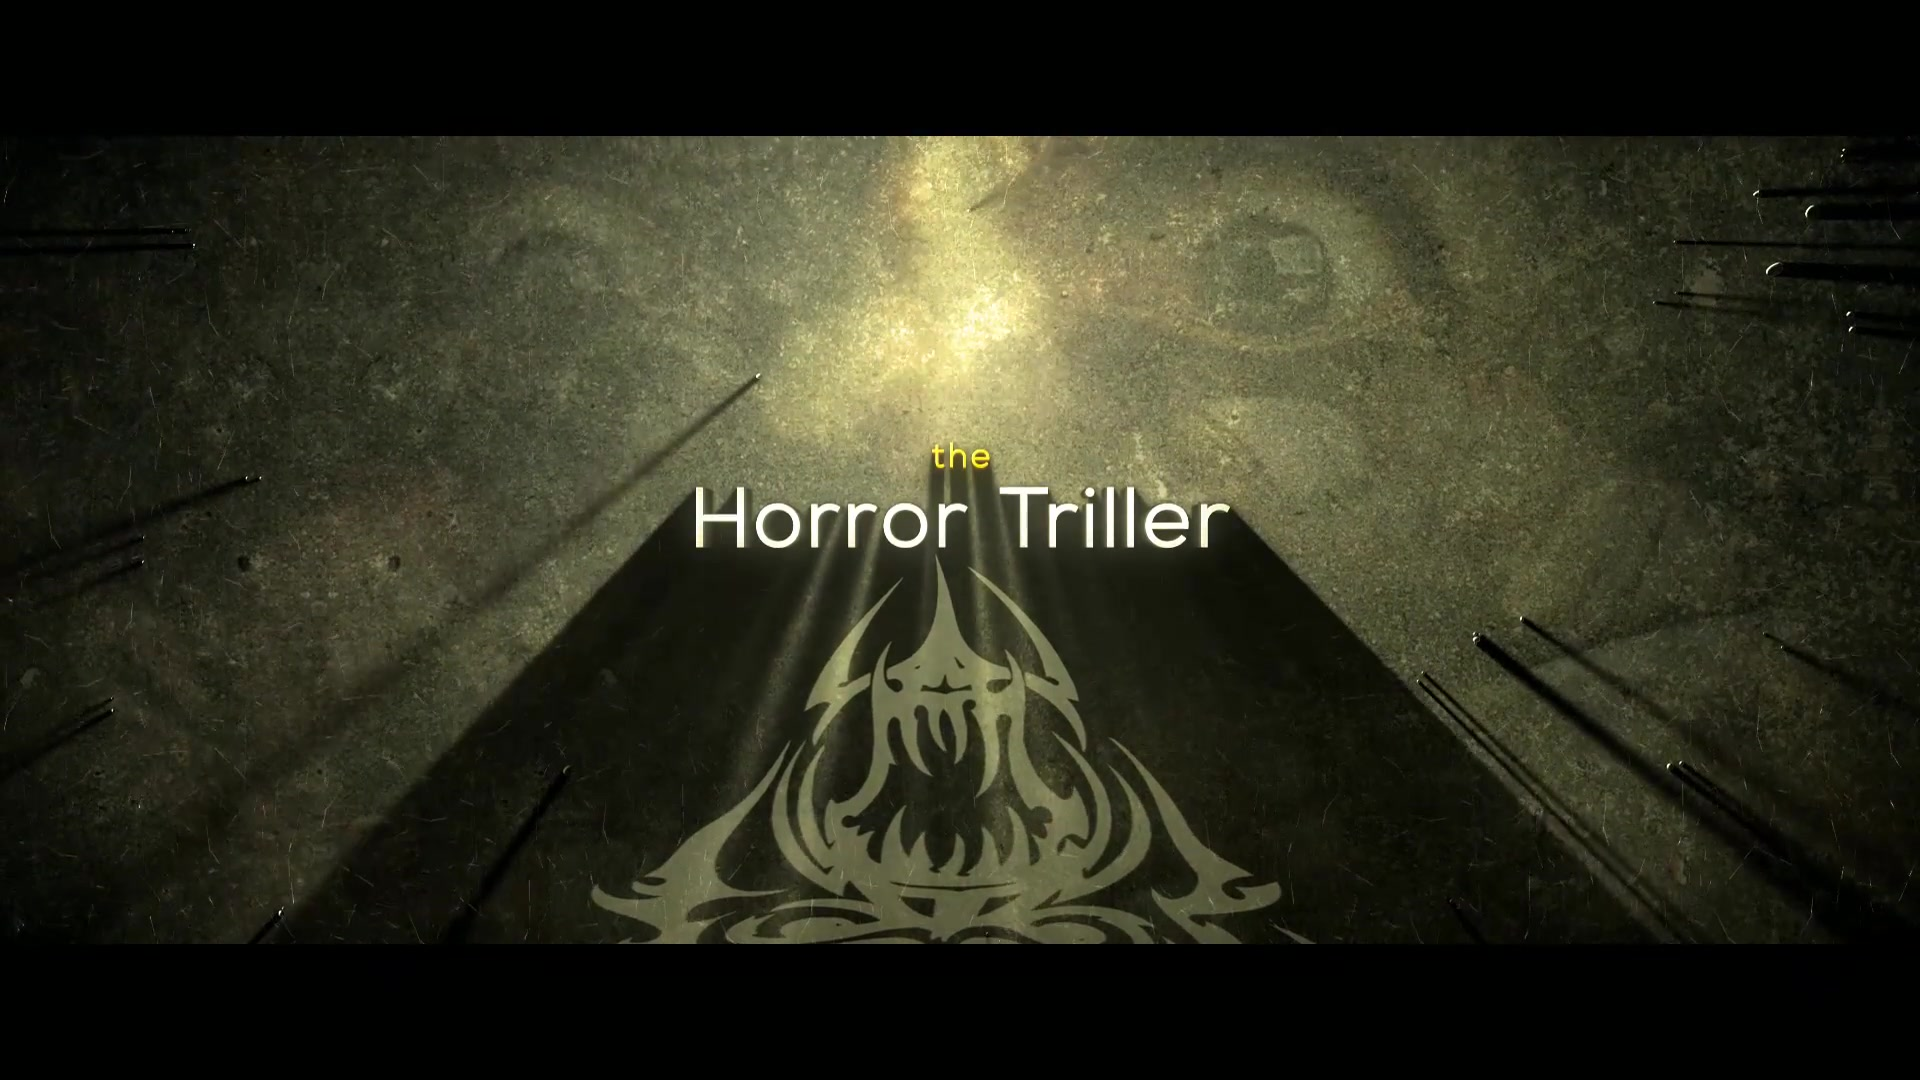 The Horror Cinematic Trailer - Download Videohive 17929594